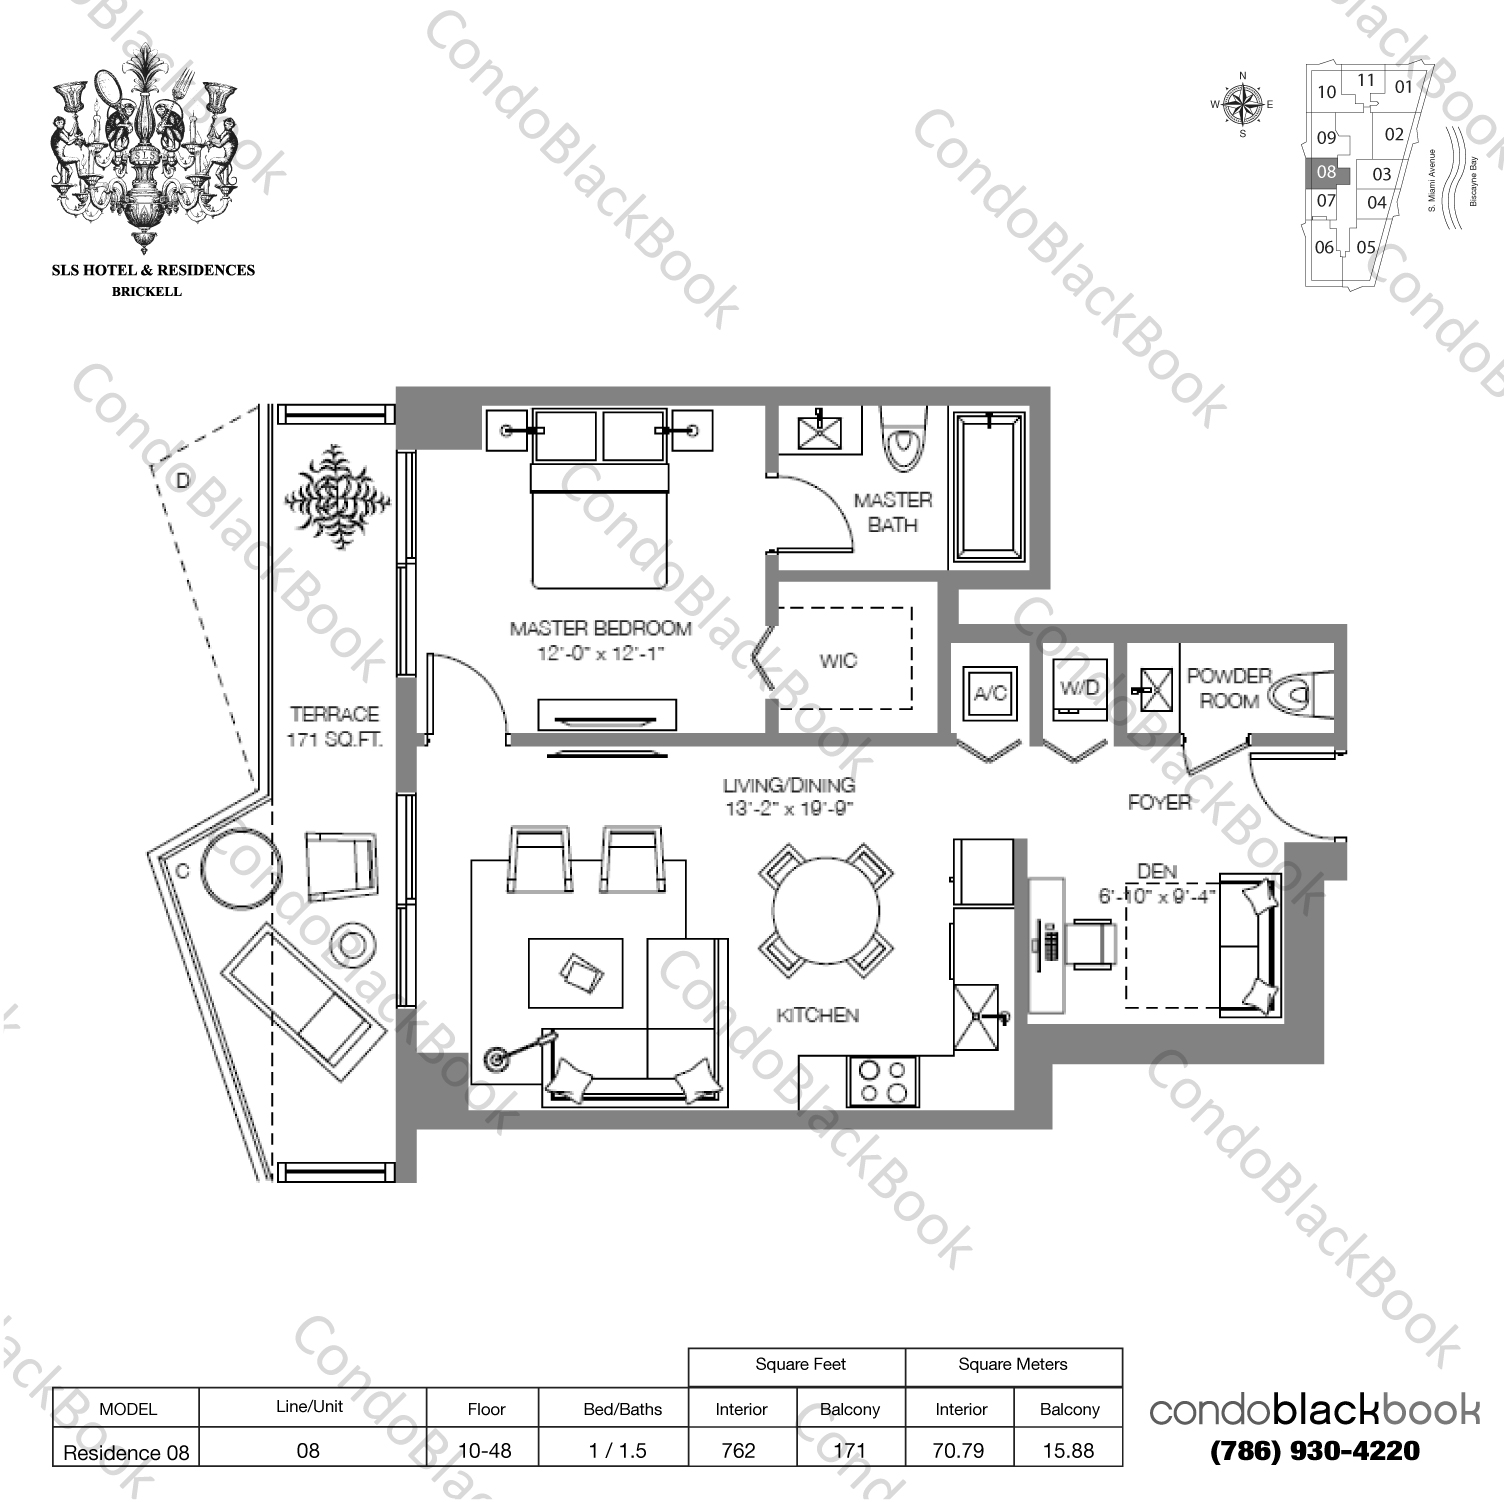 Floor plan for SLS Hotel & Residences Brickell Miami, model RESIDENCE 08, line 08, 1/1.5+Den bedrooms, 933 sq ft